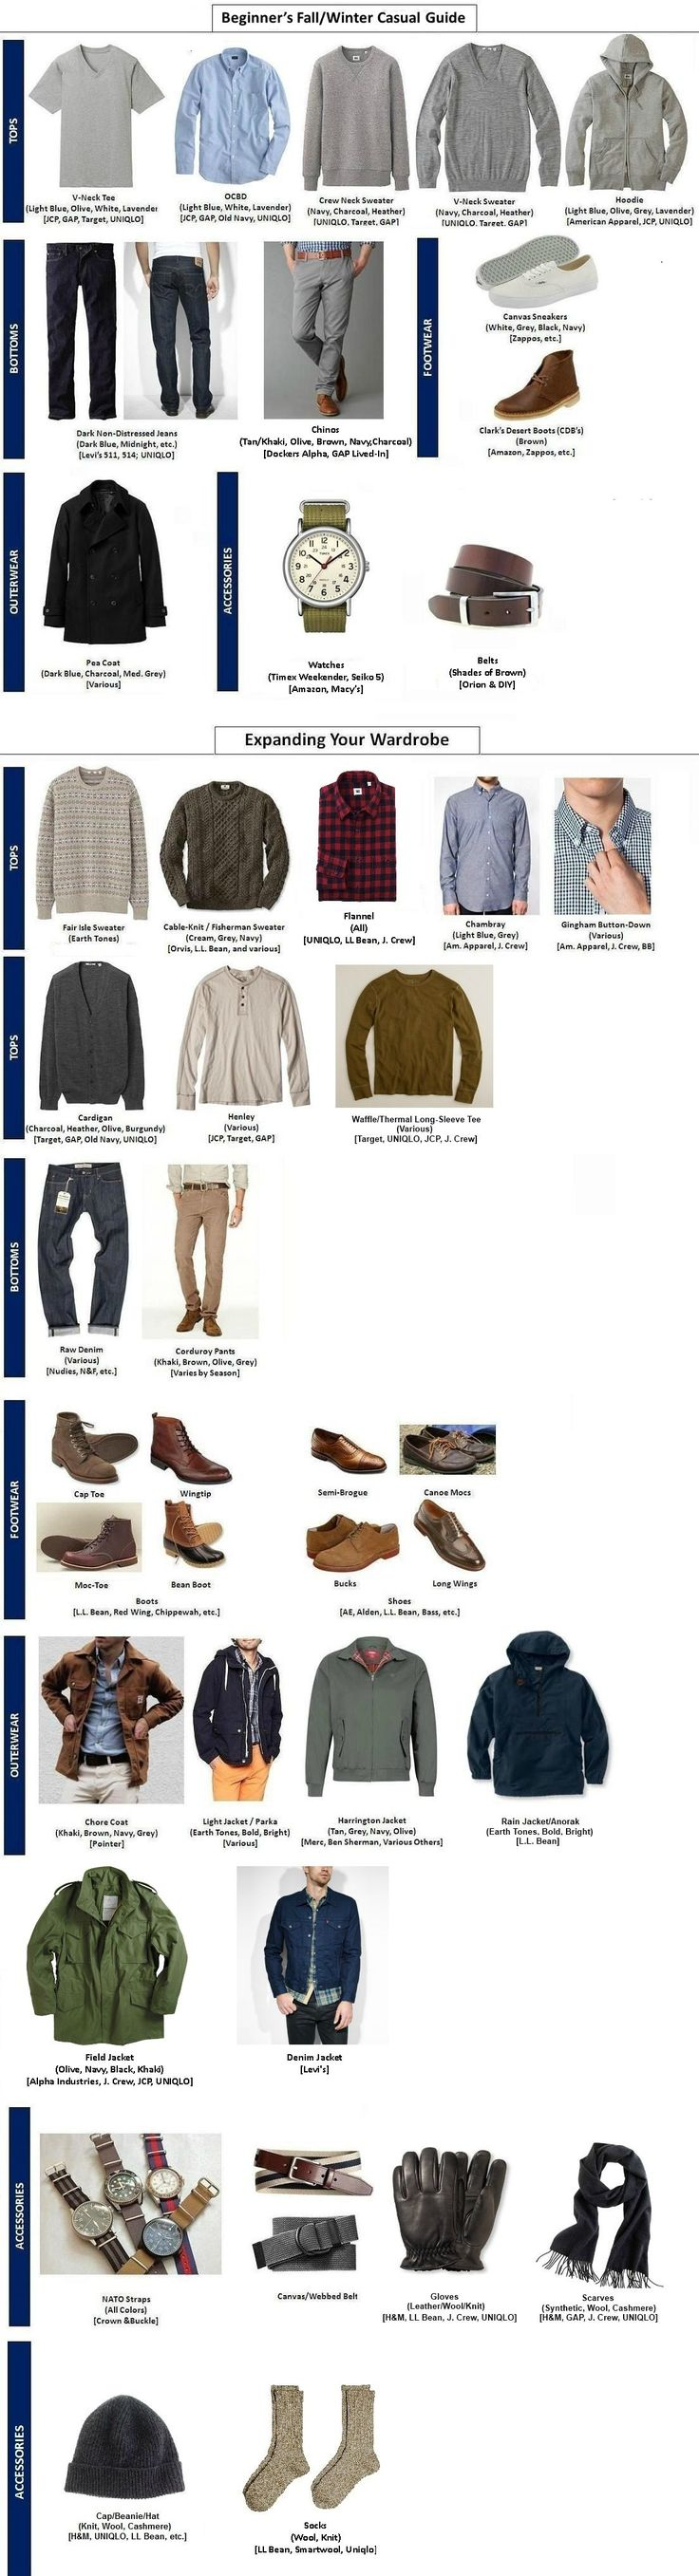 R Mfa Fall Winter Casual Guide Mens Style Guide Quotes